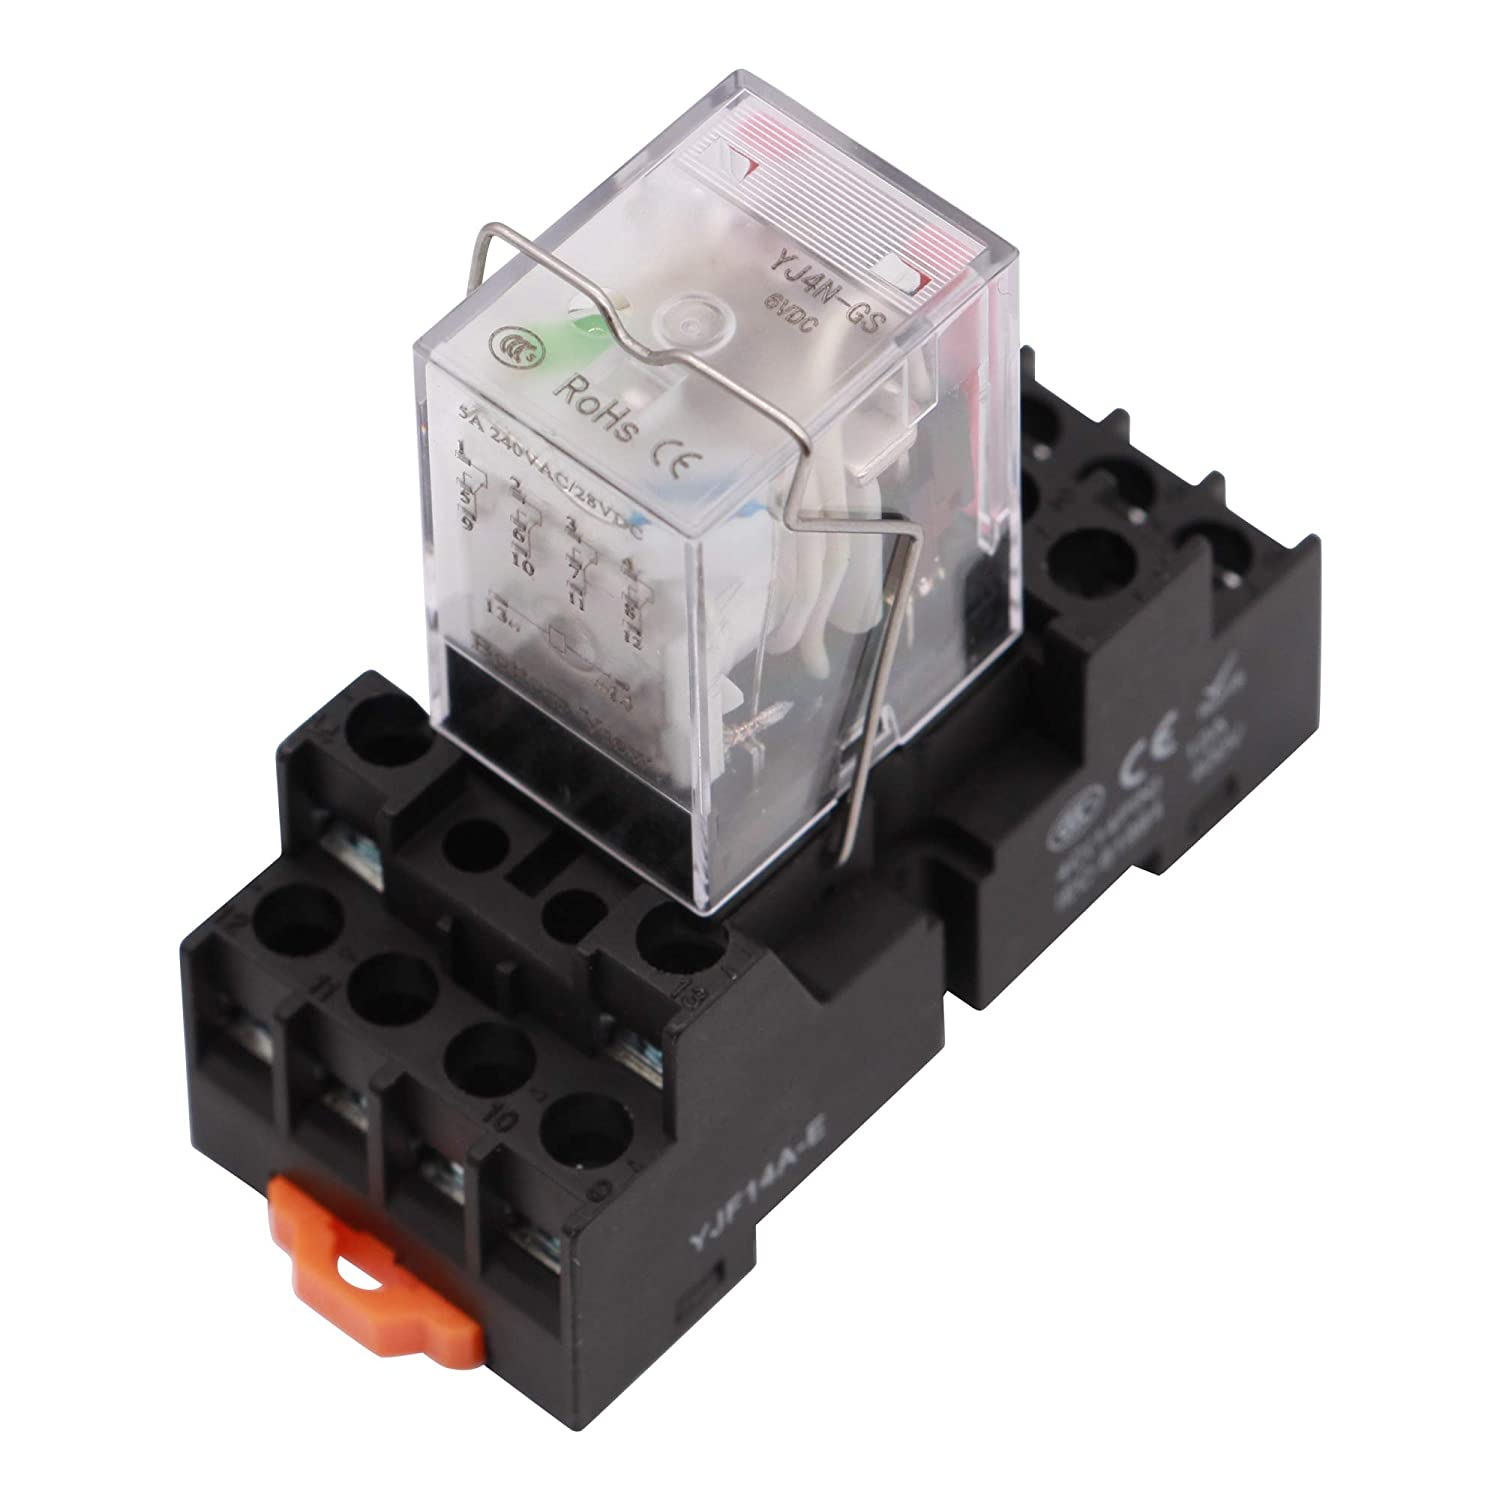 Electromagnetic Power Relay, 14-Pin 5 AMP 12V AC Relay Coil with Socket Base, LED Indicator, 4PDT 4NO 4NC - MY4NJ [Applicable for DIN Rail System]